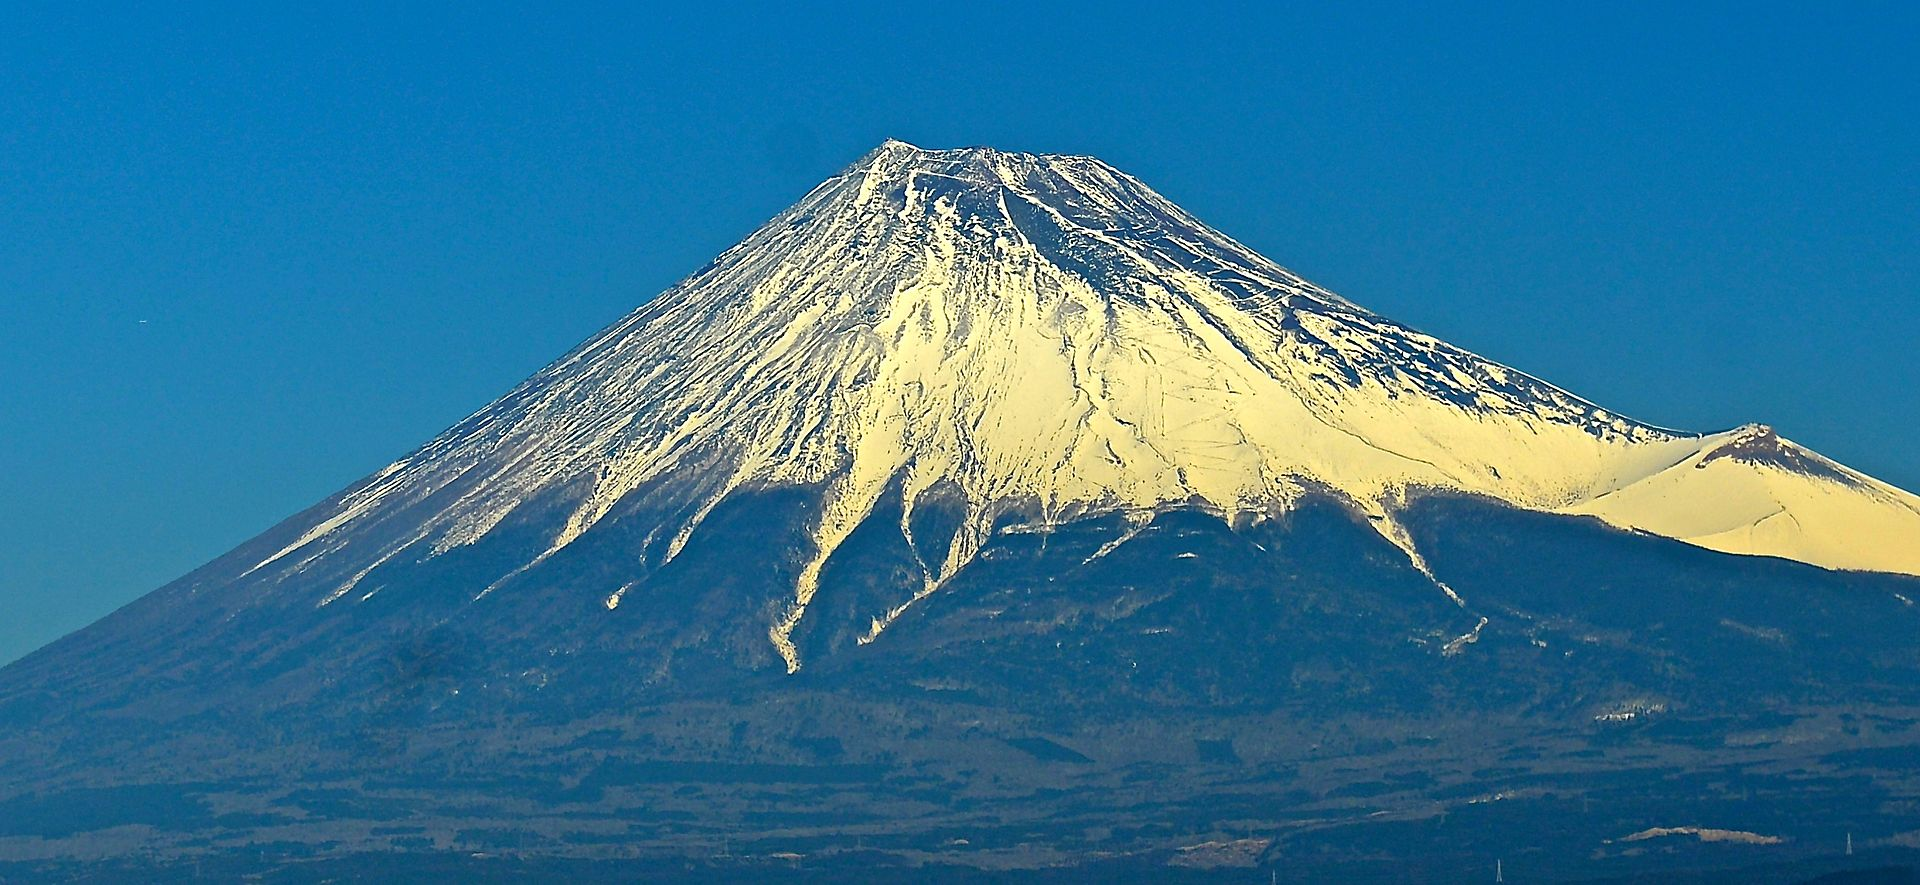 Mt. Fuji, enhanced.JPG